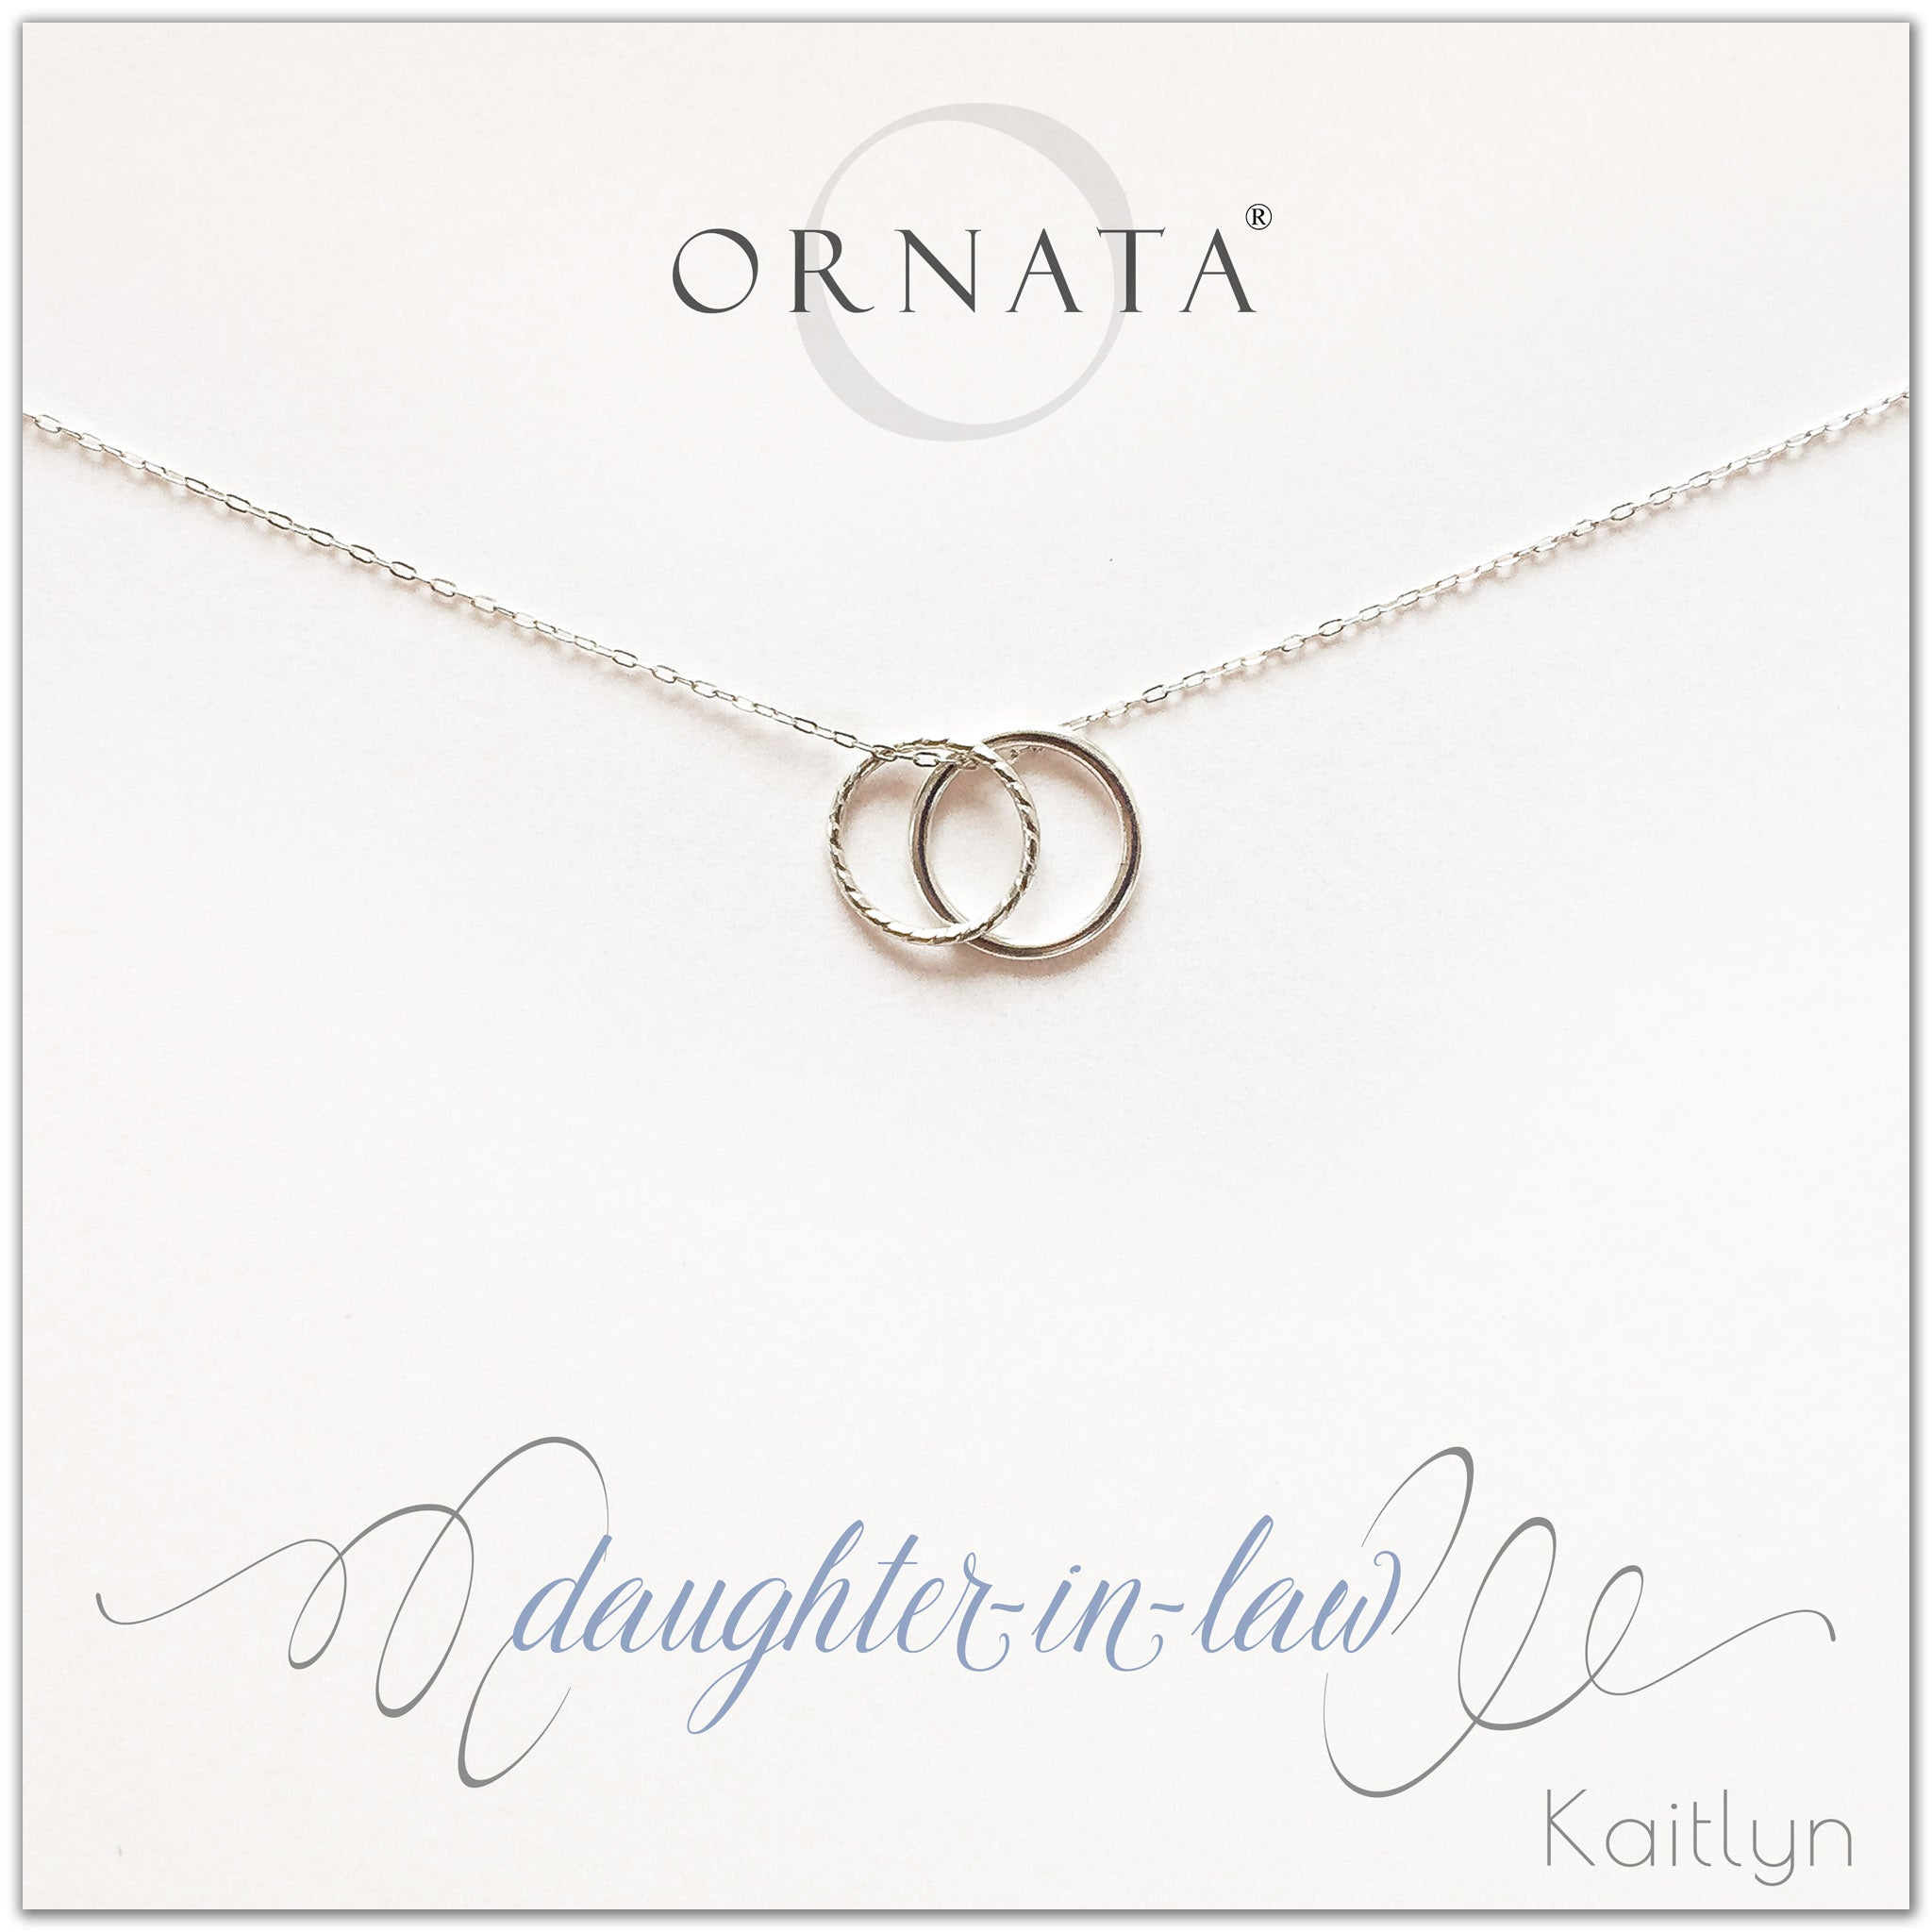 Daughter in law necklace - personalized silver necklaces. Our sterling silver custom jewelry is a perfect gift for daughters in law from mothers in law or fathers in law. Also a good gift for Mother's Day. Part of our Generations Jewelry collection.